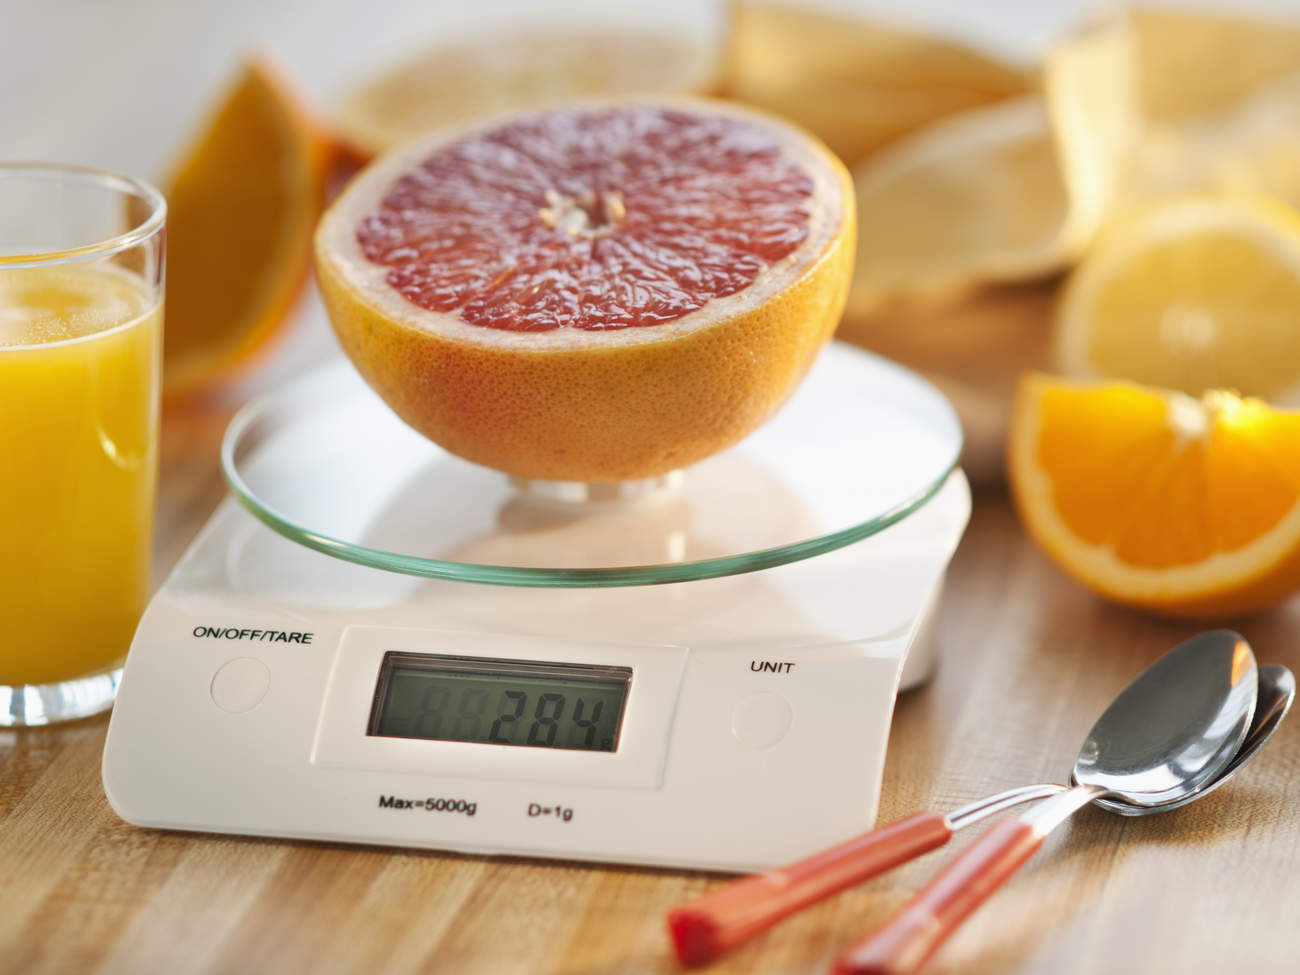 kitchen-scale-orange